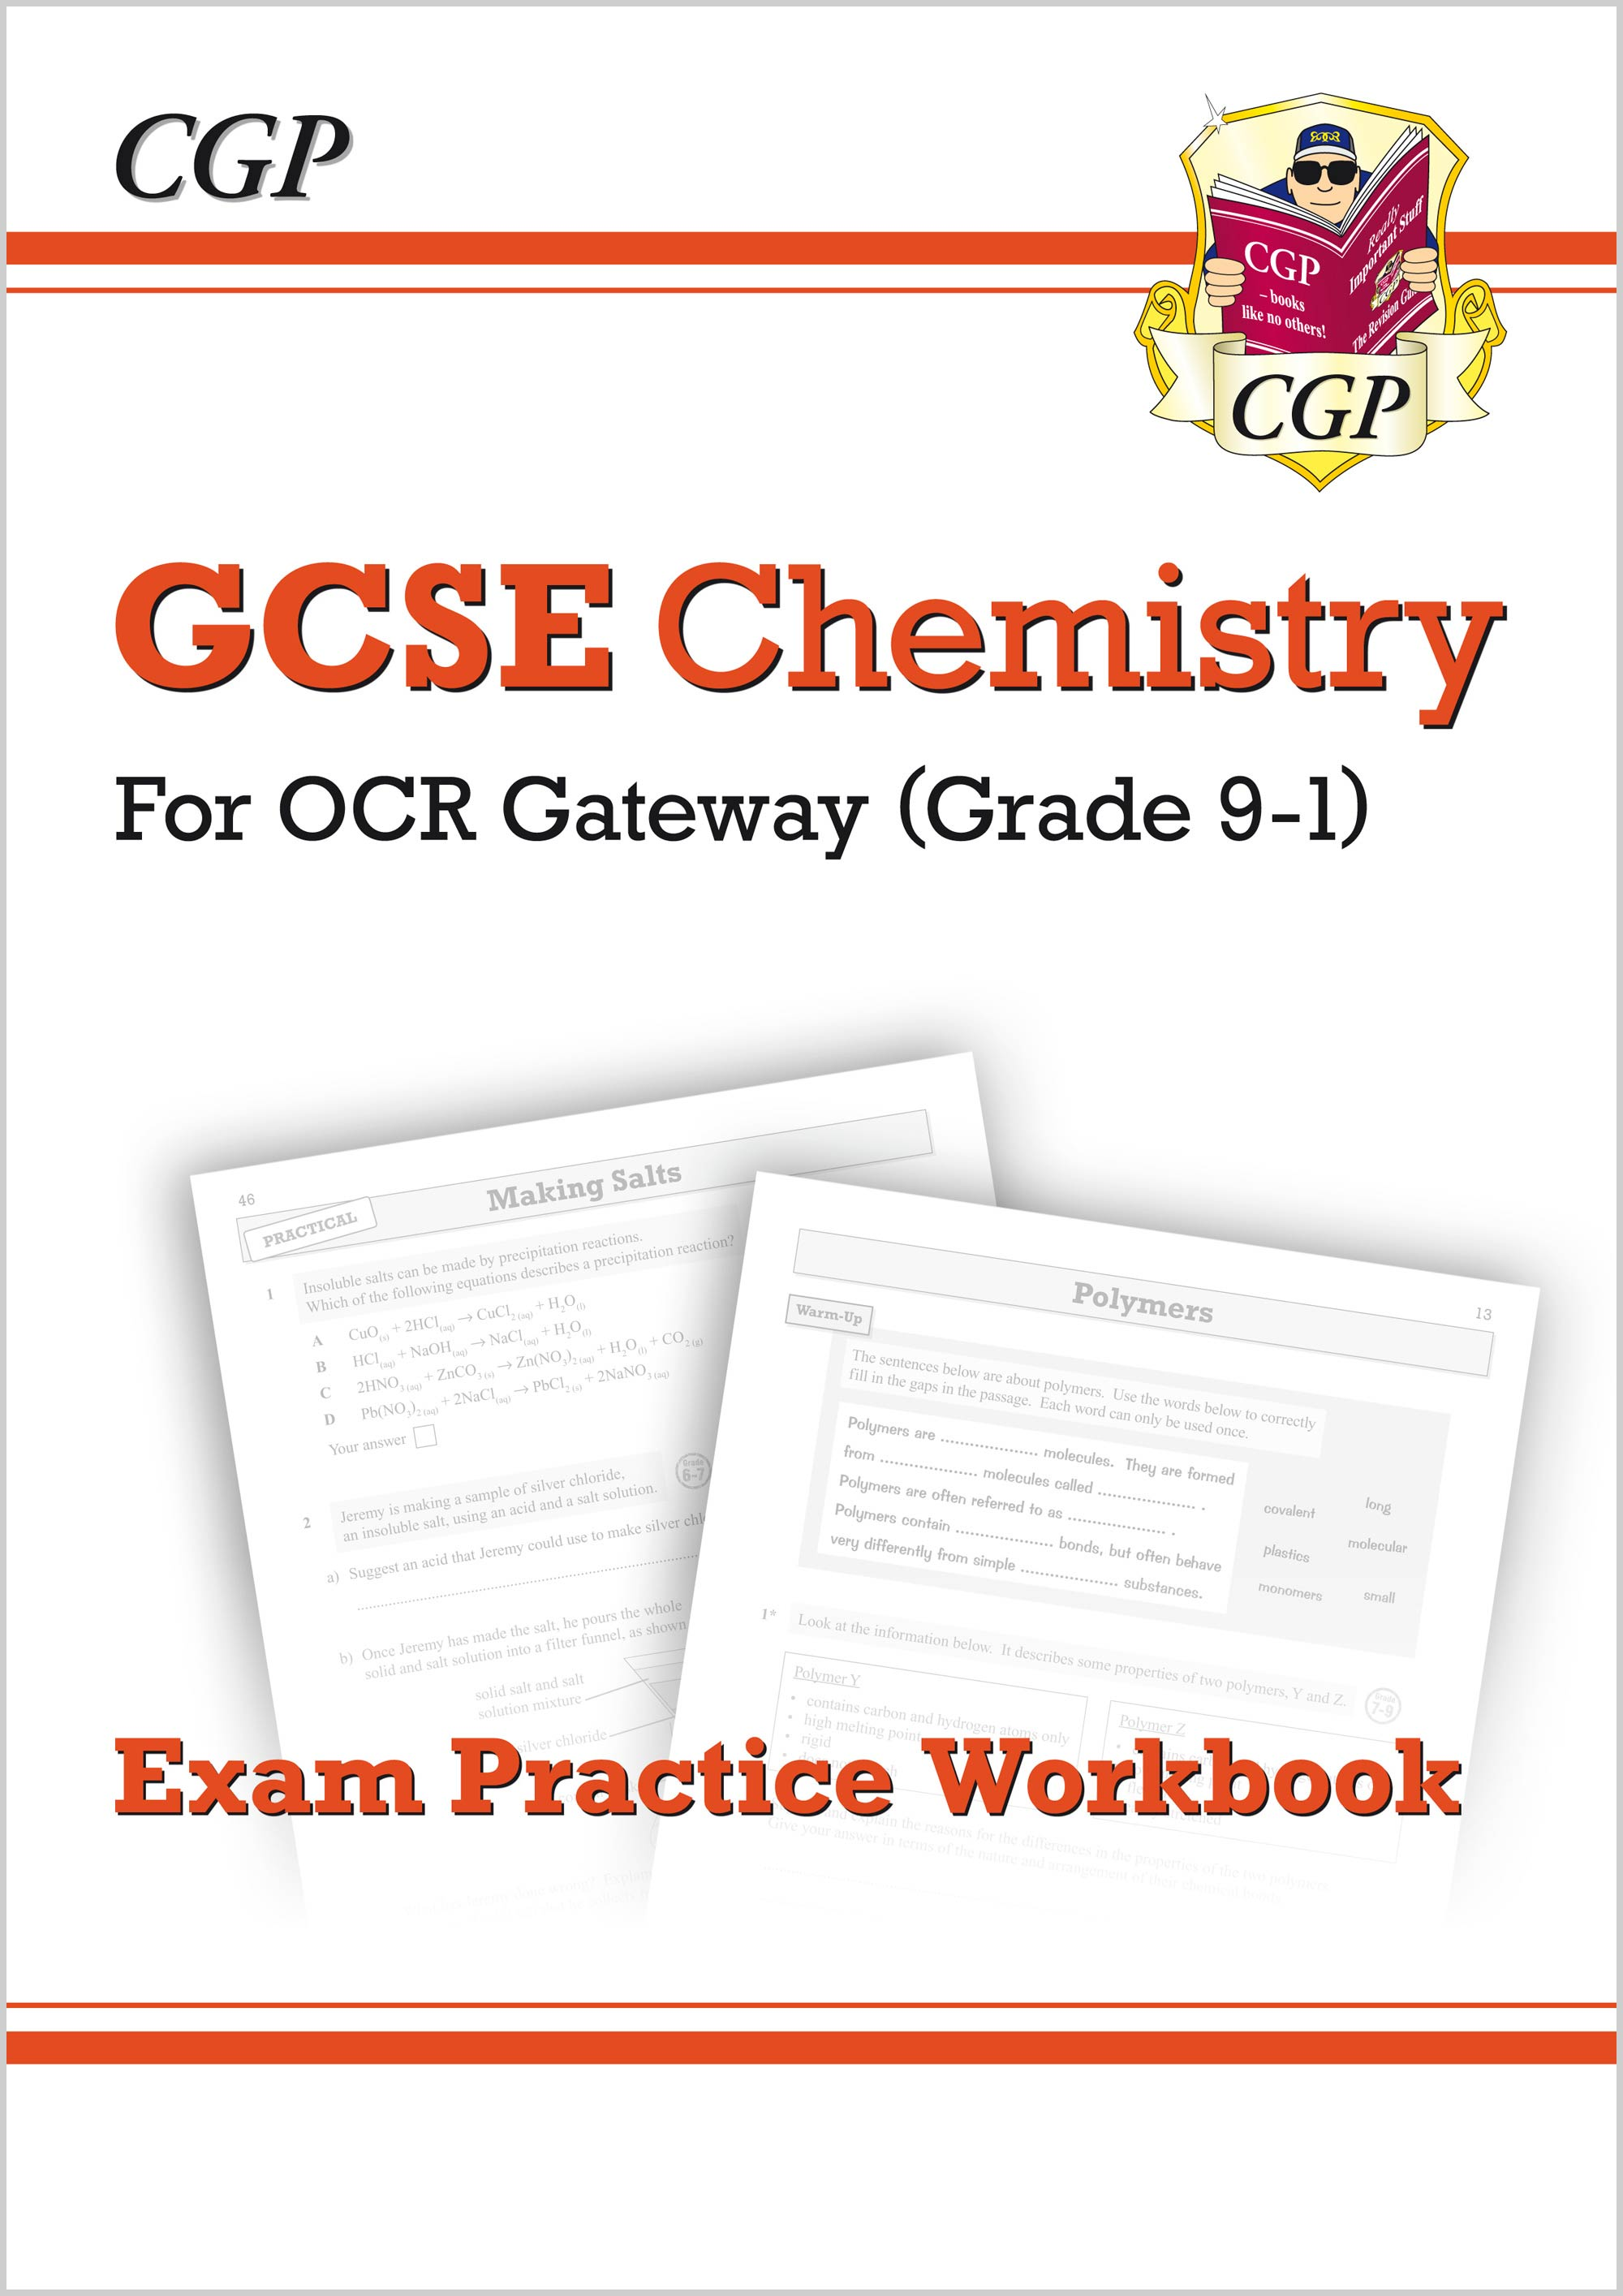 CRQ41 - New Grade 9-1 GCSE Chemistry: OCR Gateway Exam Practice Workbook